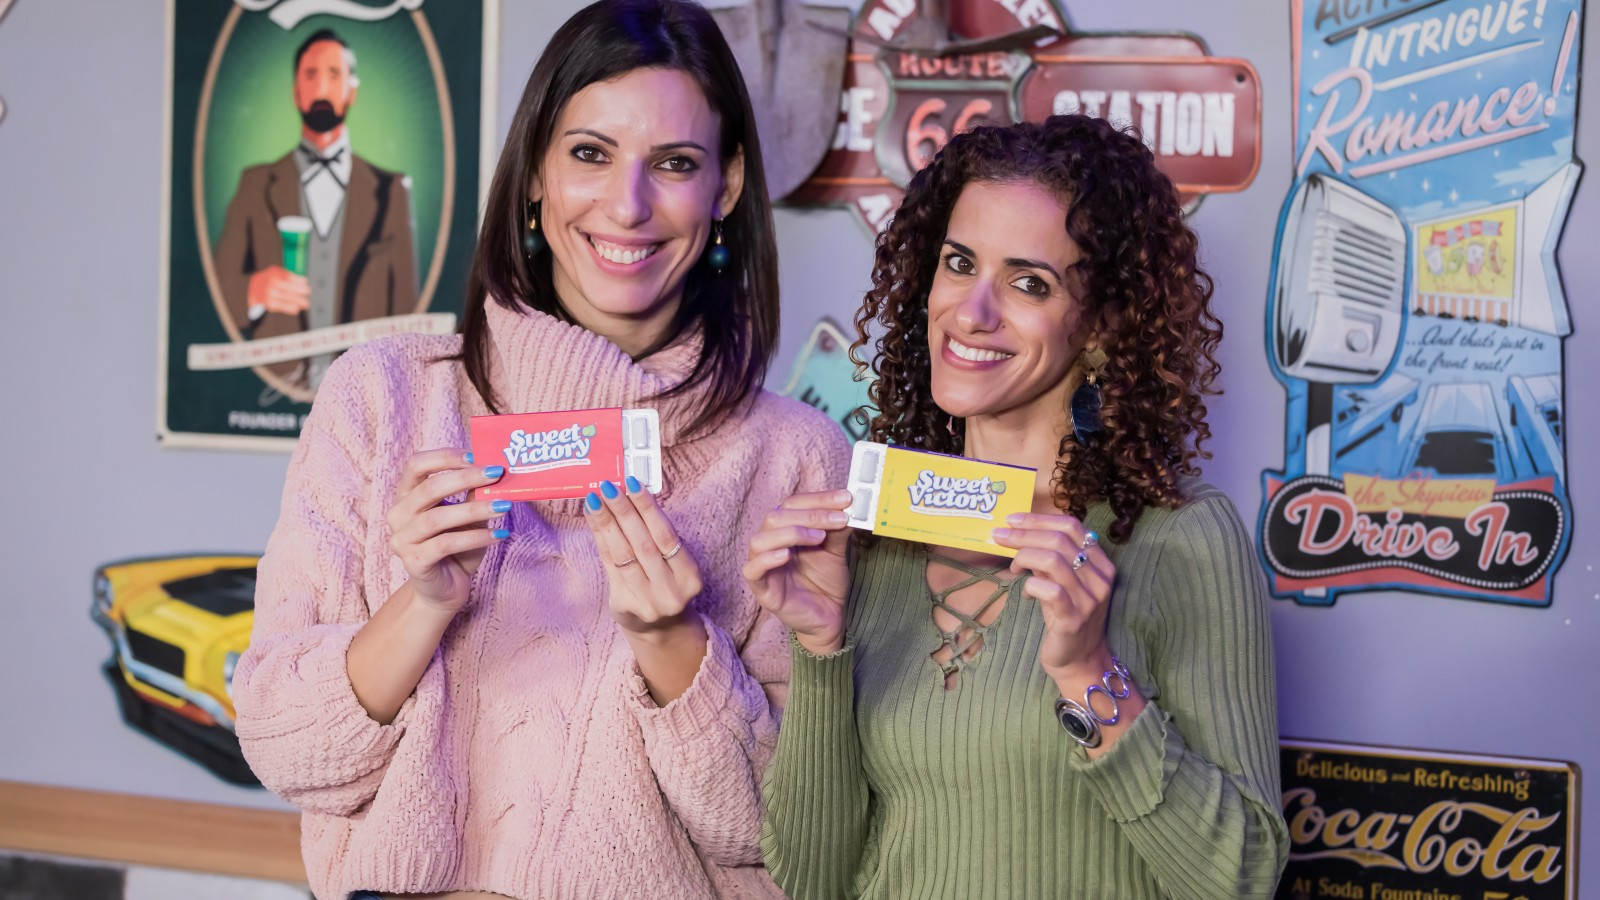 Sweet: New Chewing Gum Turns Users Off Sugary Treats